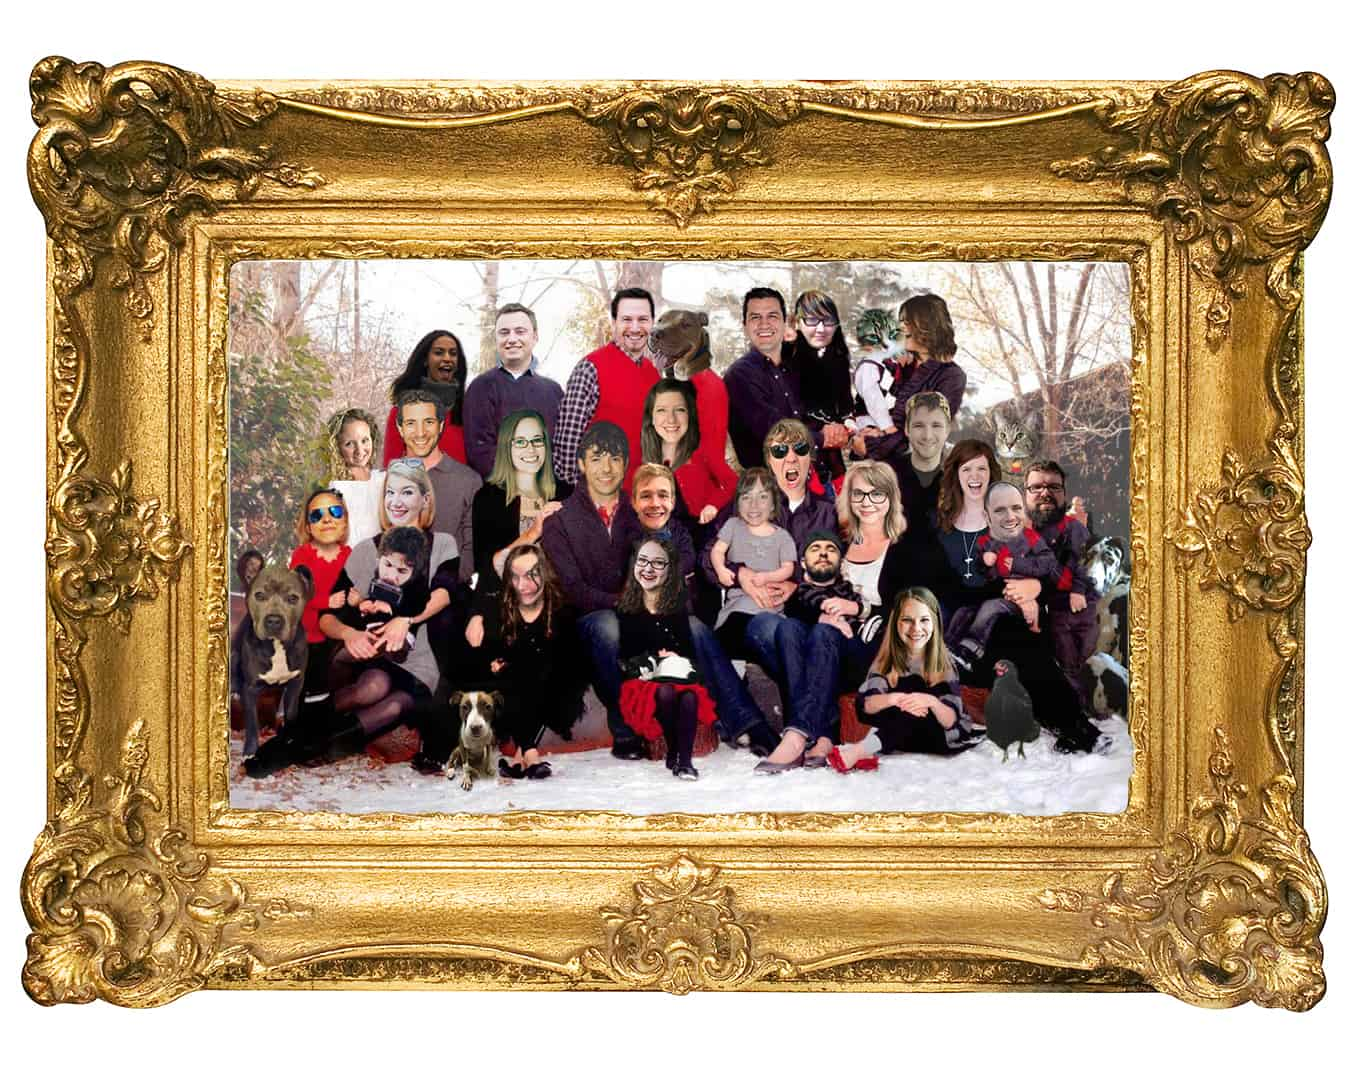 A photoshop of Mediavine team members' faces over a family Christmas photo.